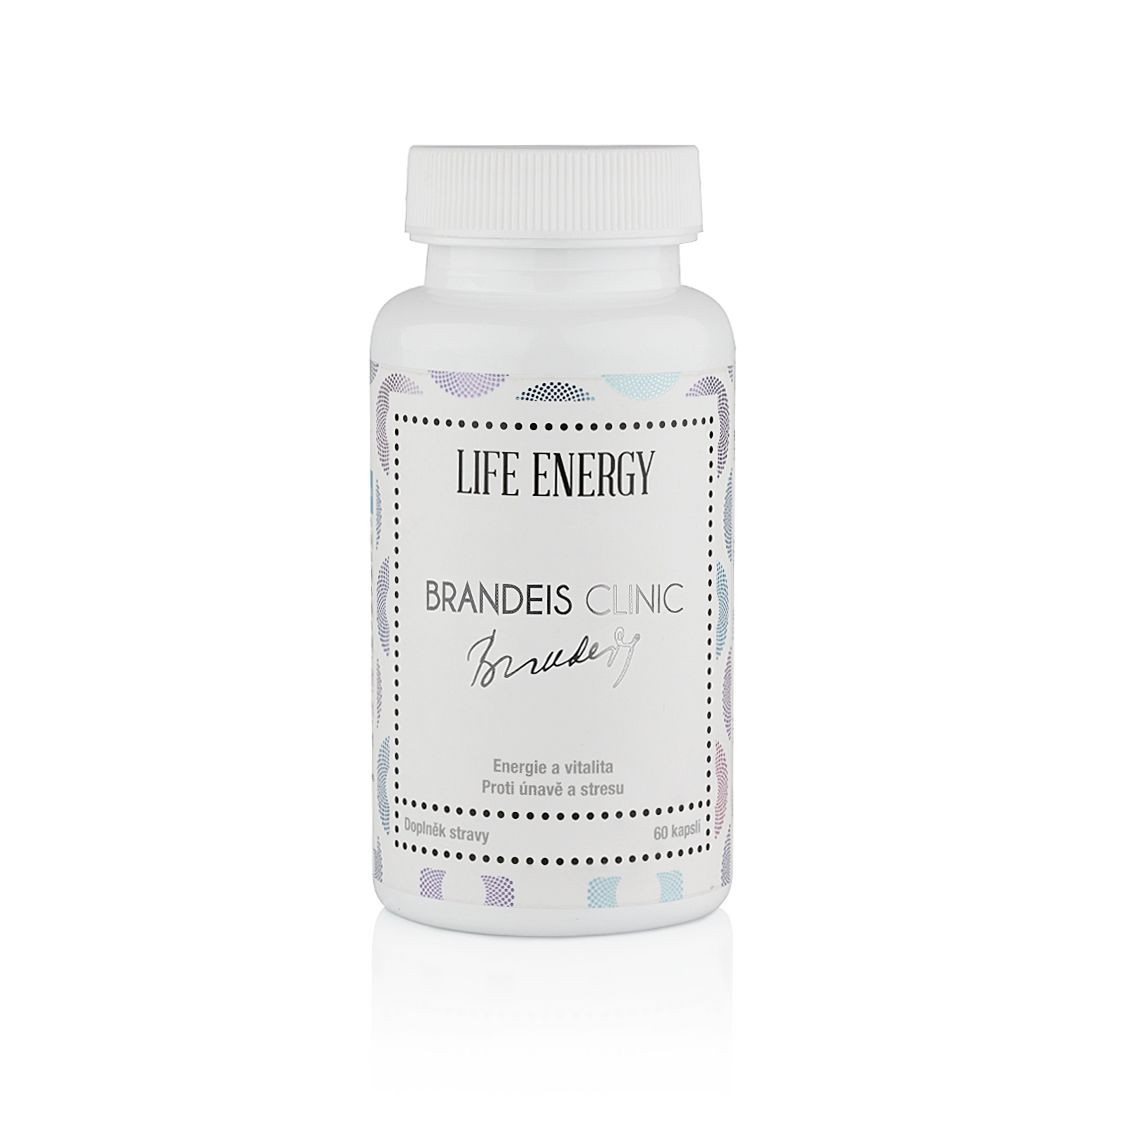 LIFE ENERGY by Brandeis Clinic